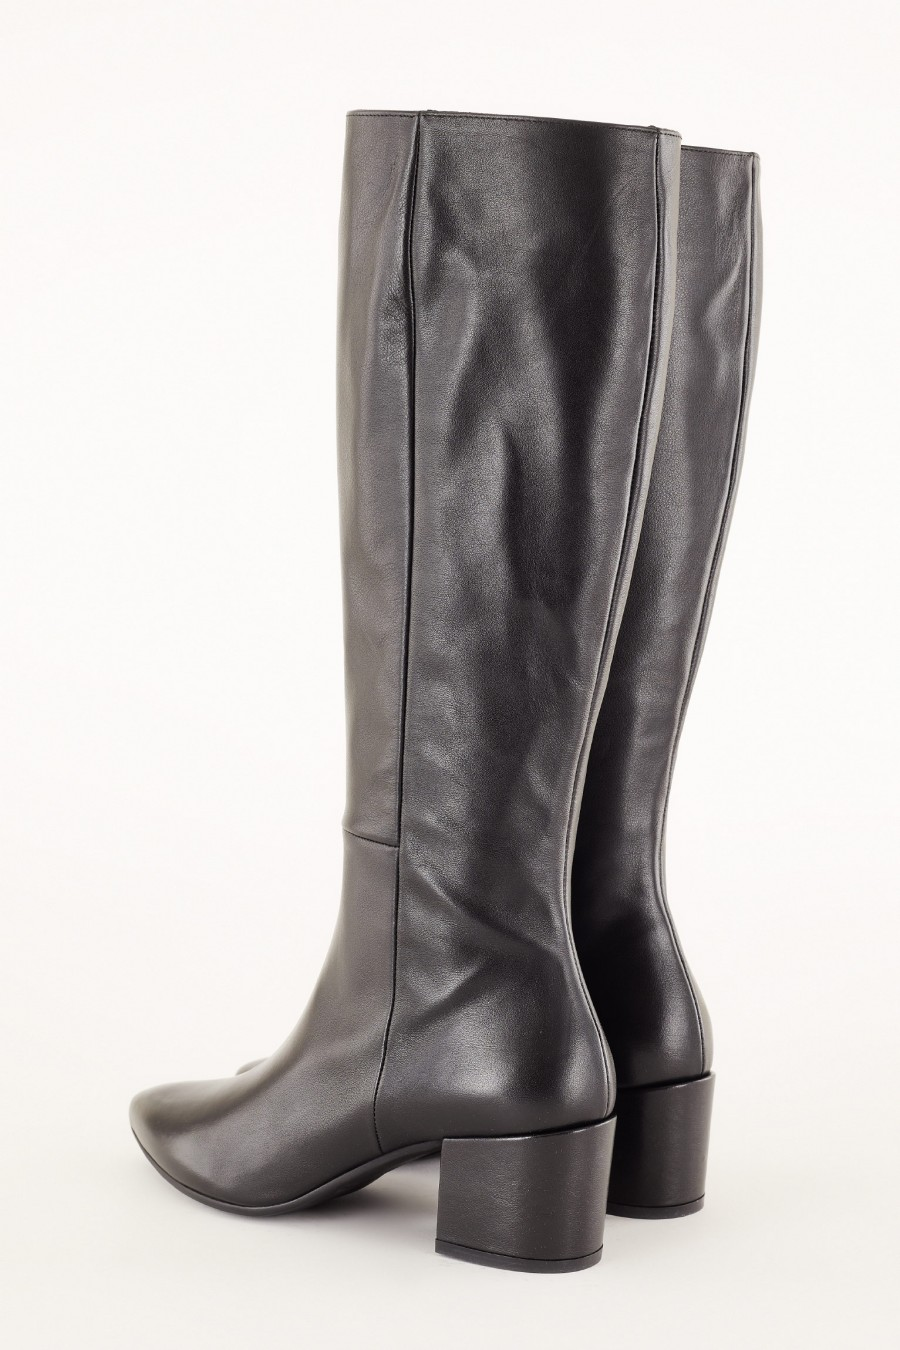 winter boots with side zipper